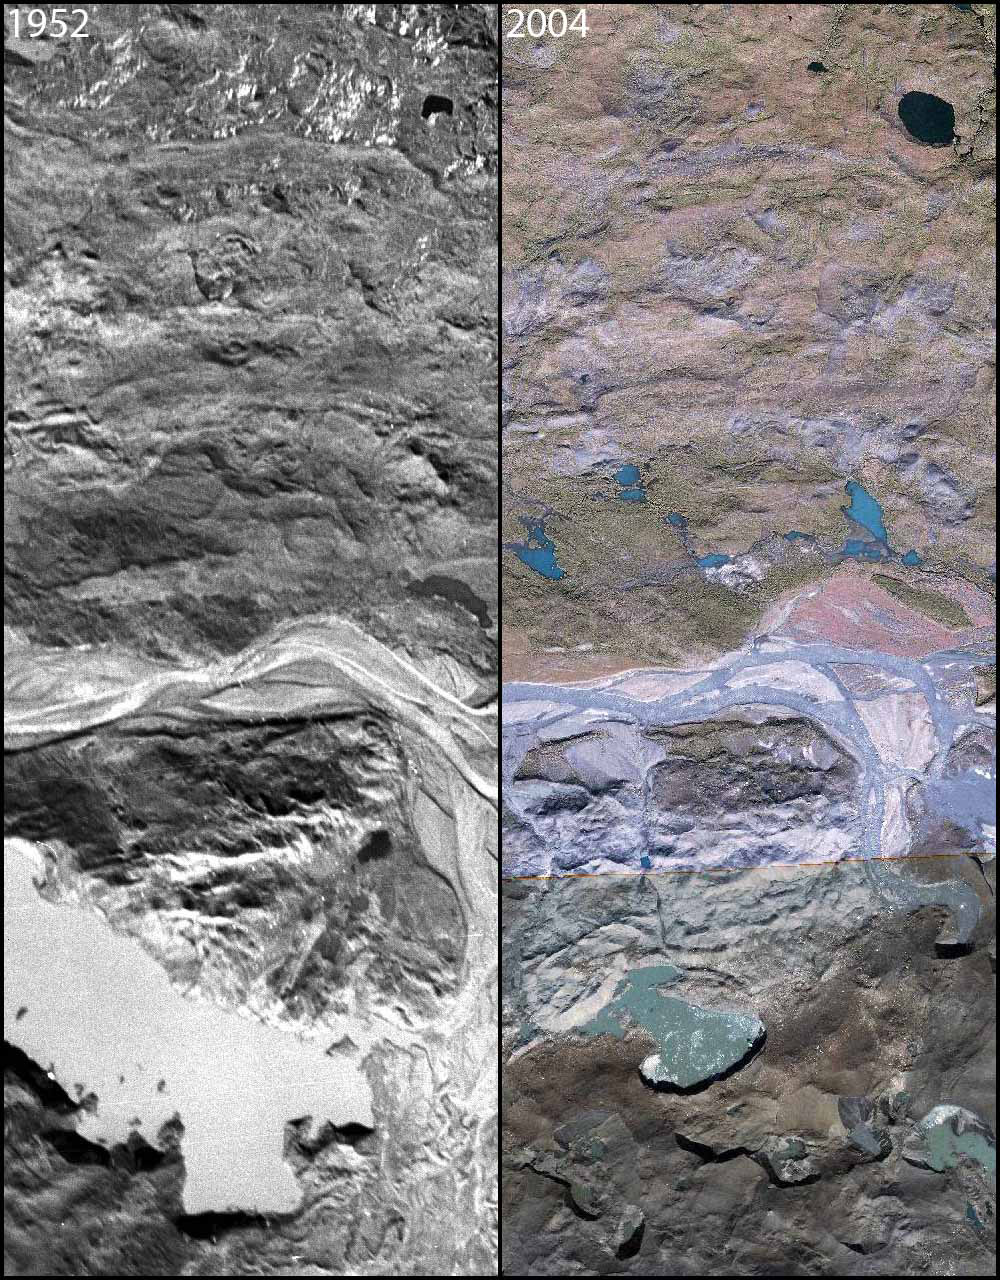 Muldrow Glacier photo pair